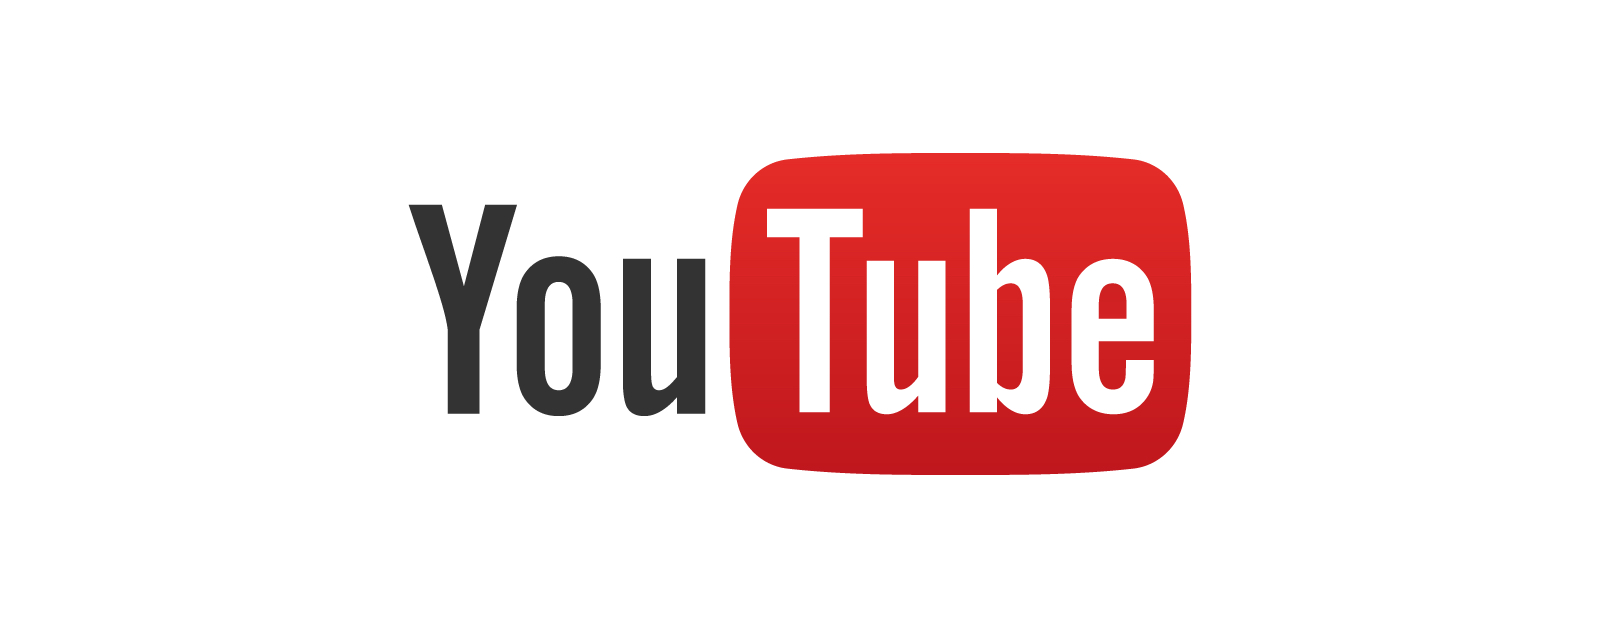 YouTube's Original Content May be Reacting to 'Subscription Fatigue'